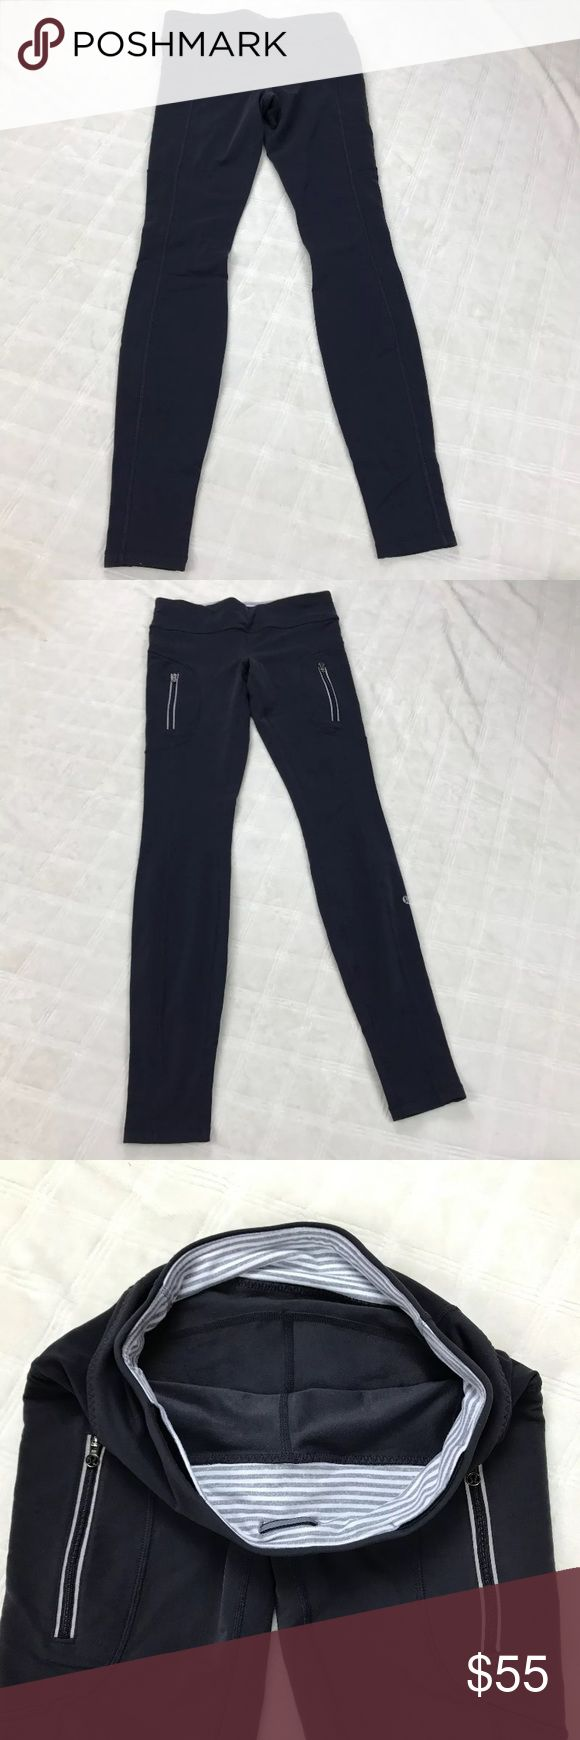 """Lululemon yoga pants, striped inner waist Full length fitted workout pants by Lululemon. Striped inner waist with 2 small inner pocket and 2 zip outer pockets. Measurements (flat & approximate):  waist: 14"""";  rise: 8"""";  inseam: 31"""" lululemon athletica Pants Leggings"""